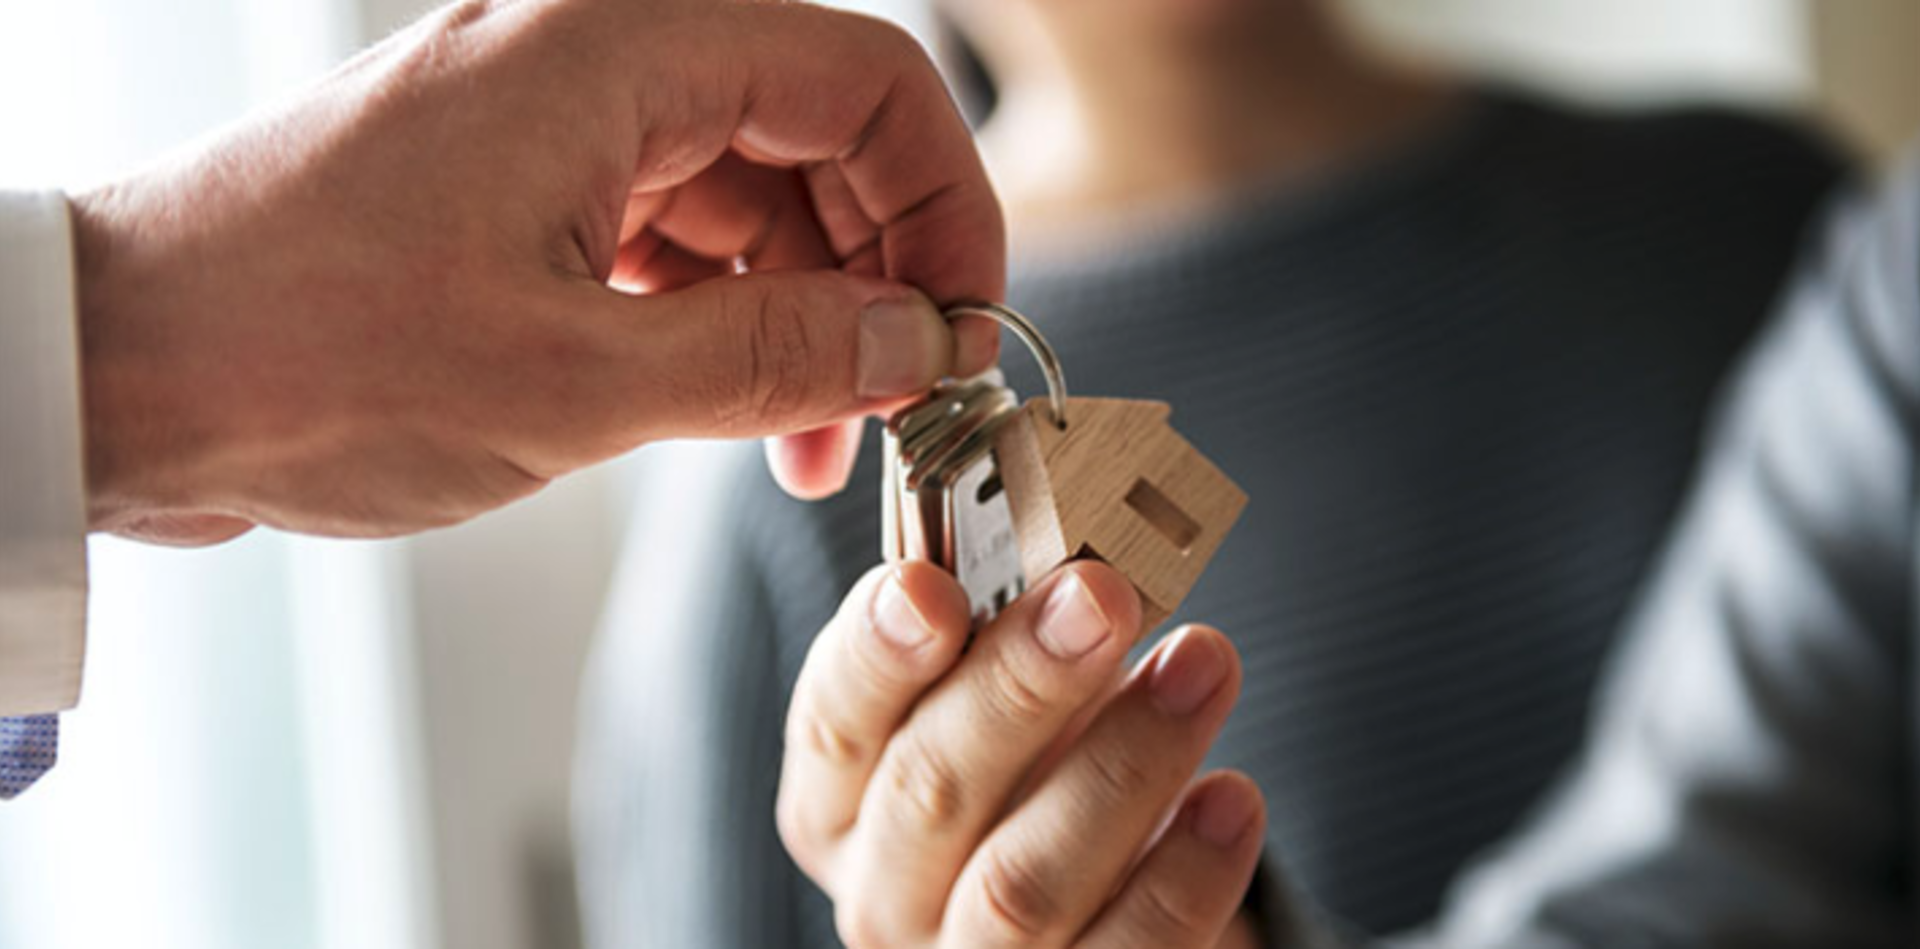 When it comes to real estate – Do good things really come to those who wait?